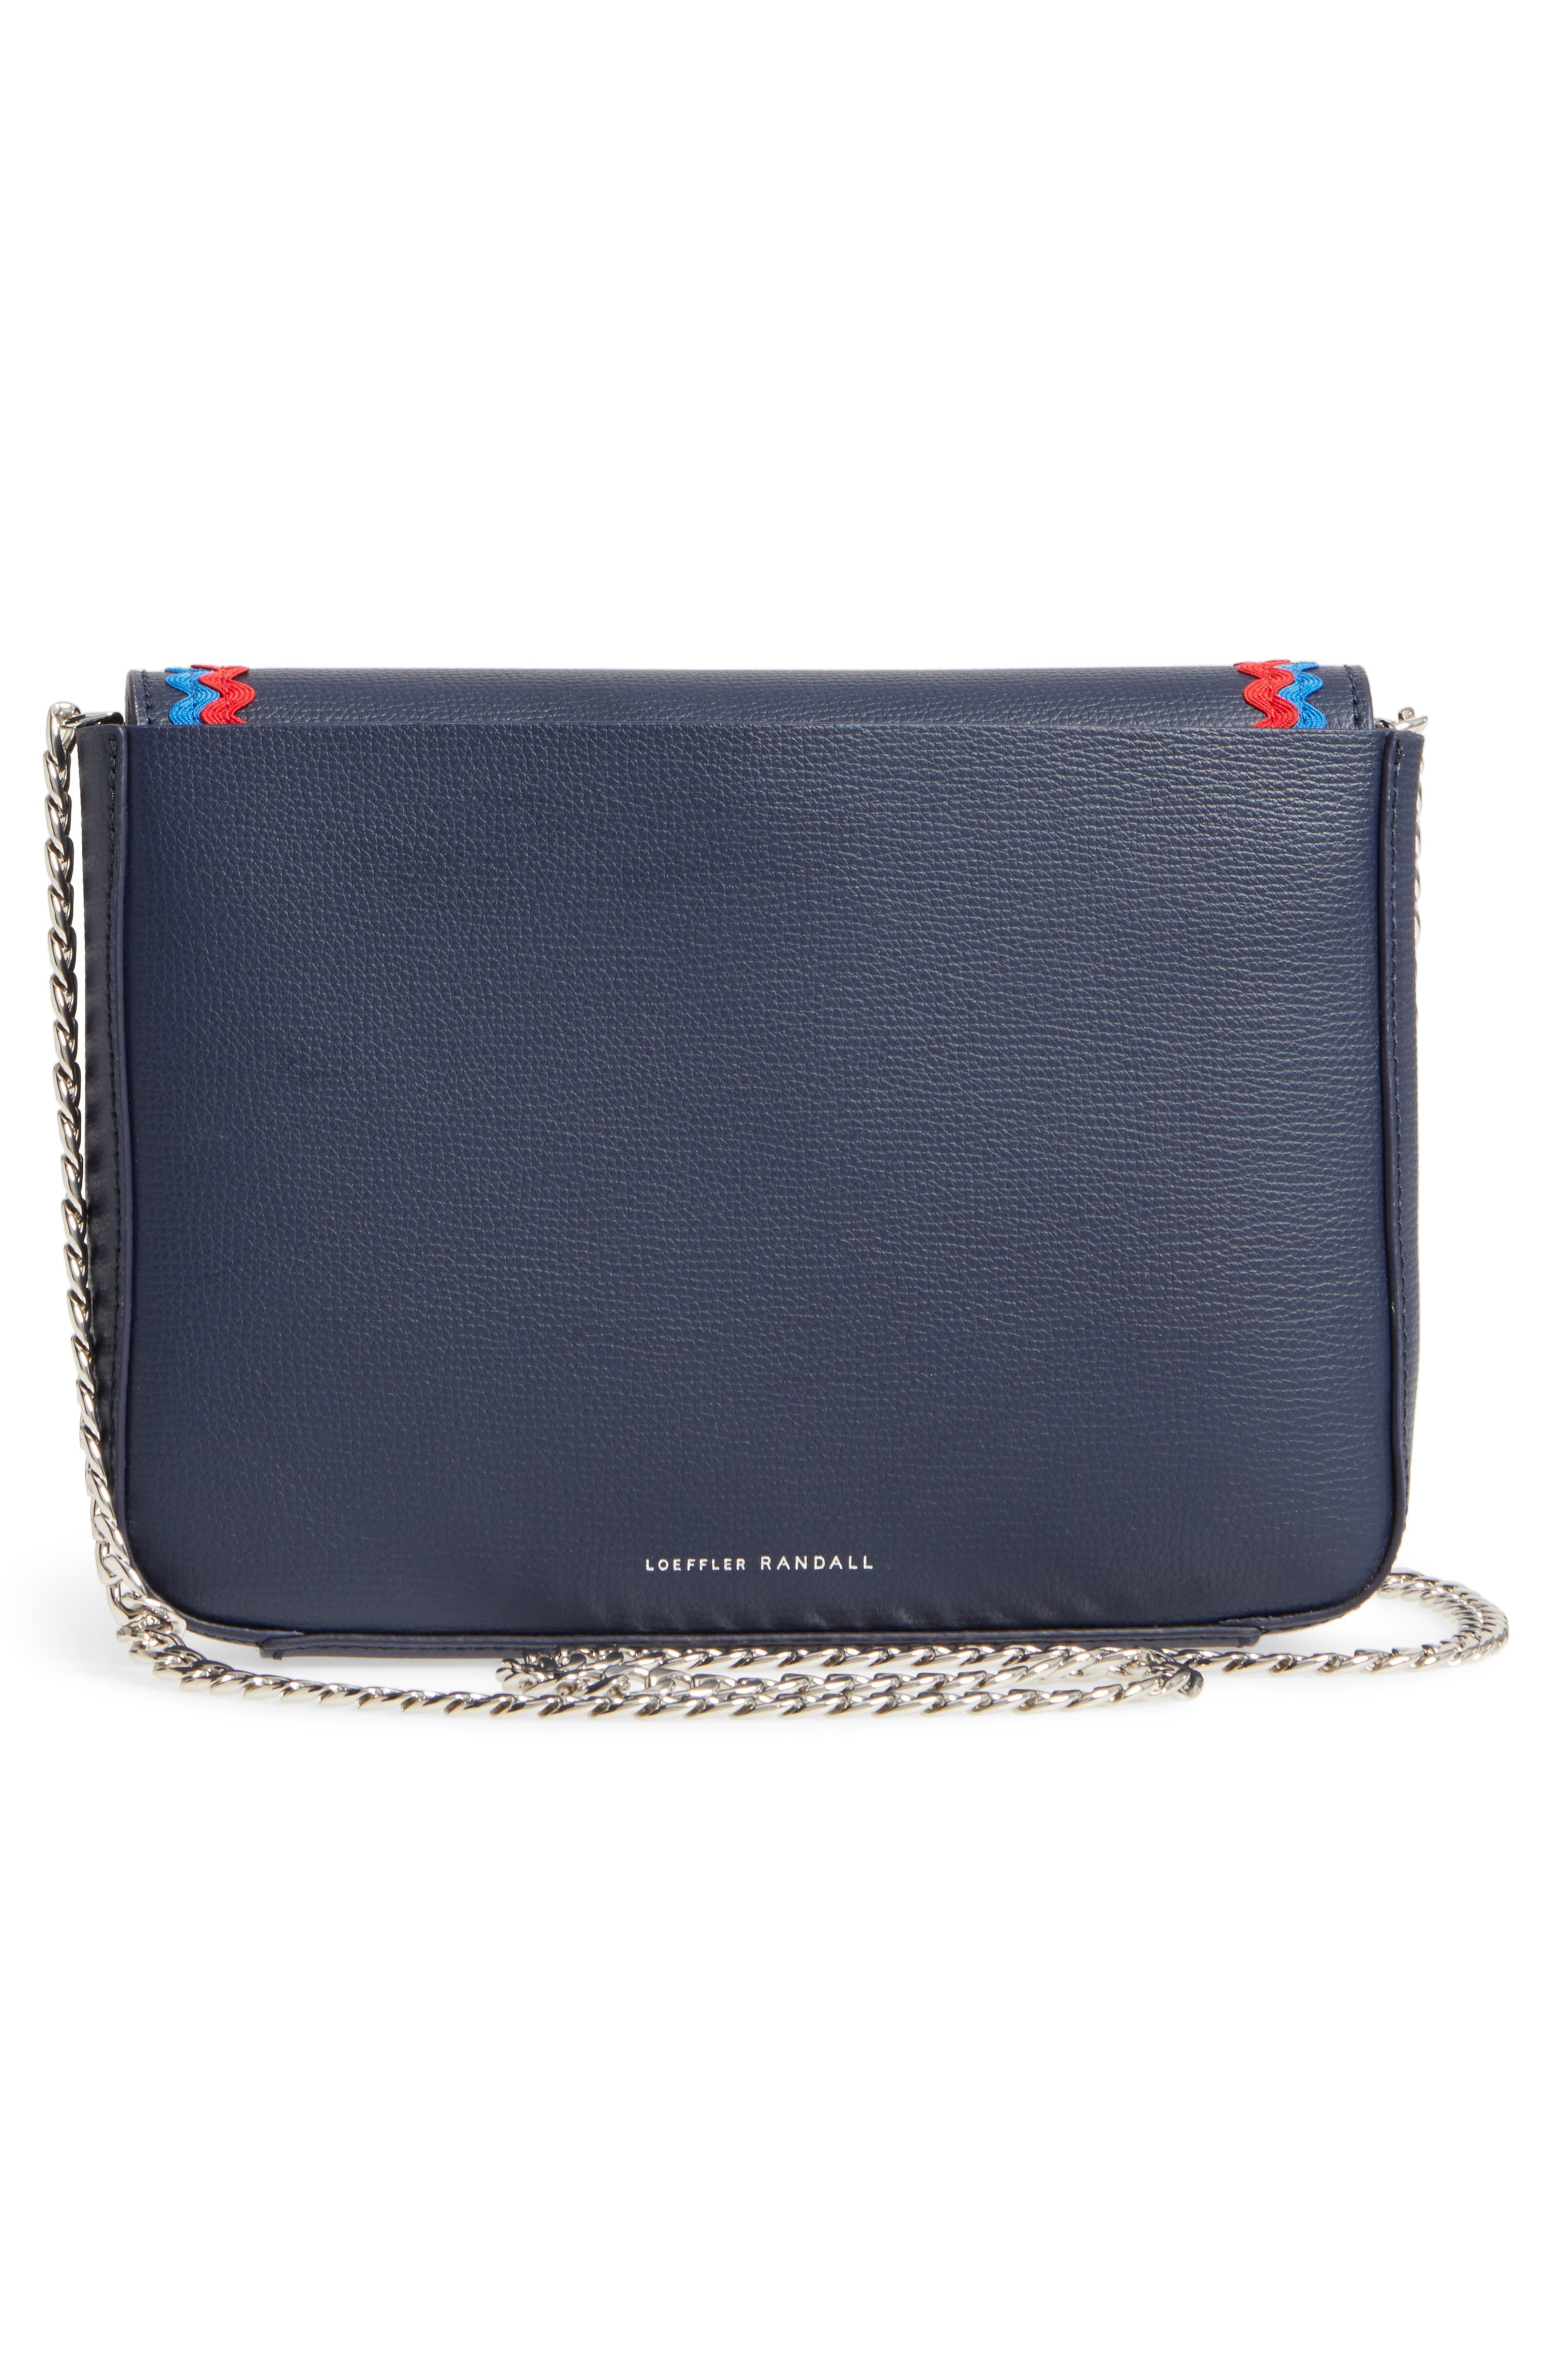 Lock Leather Flap Clutch/Shoulder Bag,                             Alternate thumbnail 3, color,                             Eclipse/ Multi